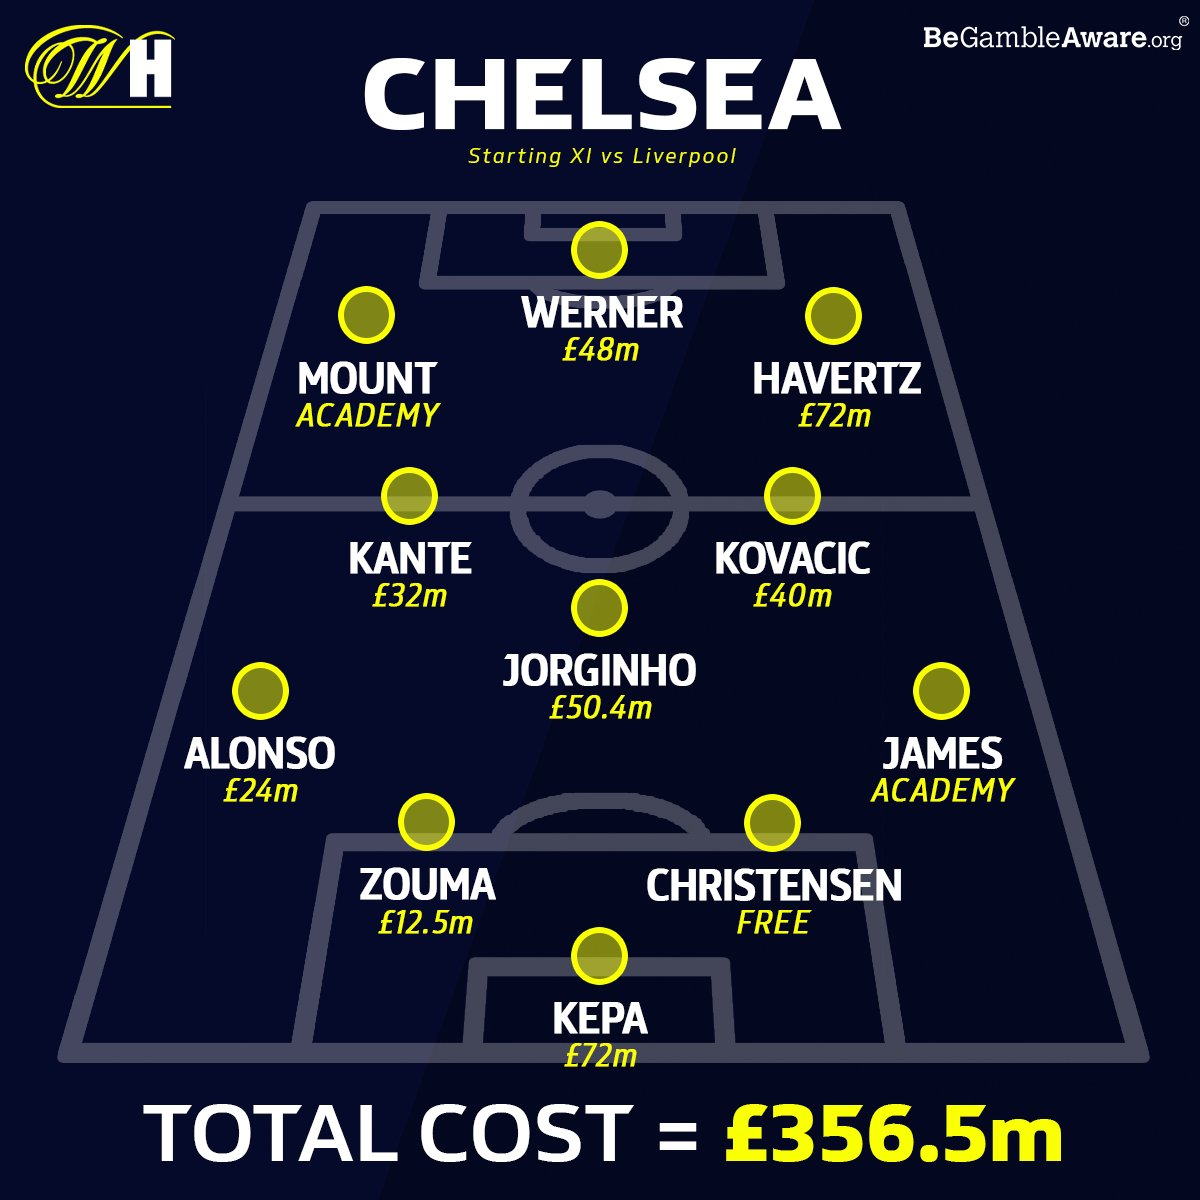 There's over £700m worth of players in today's game between Chelsea and Liverpool. 🤑  Who will win? 🤔 https://t.co/OsObp6TBIH